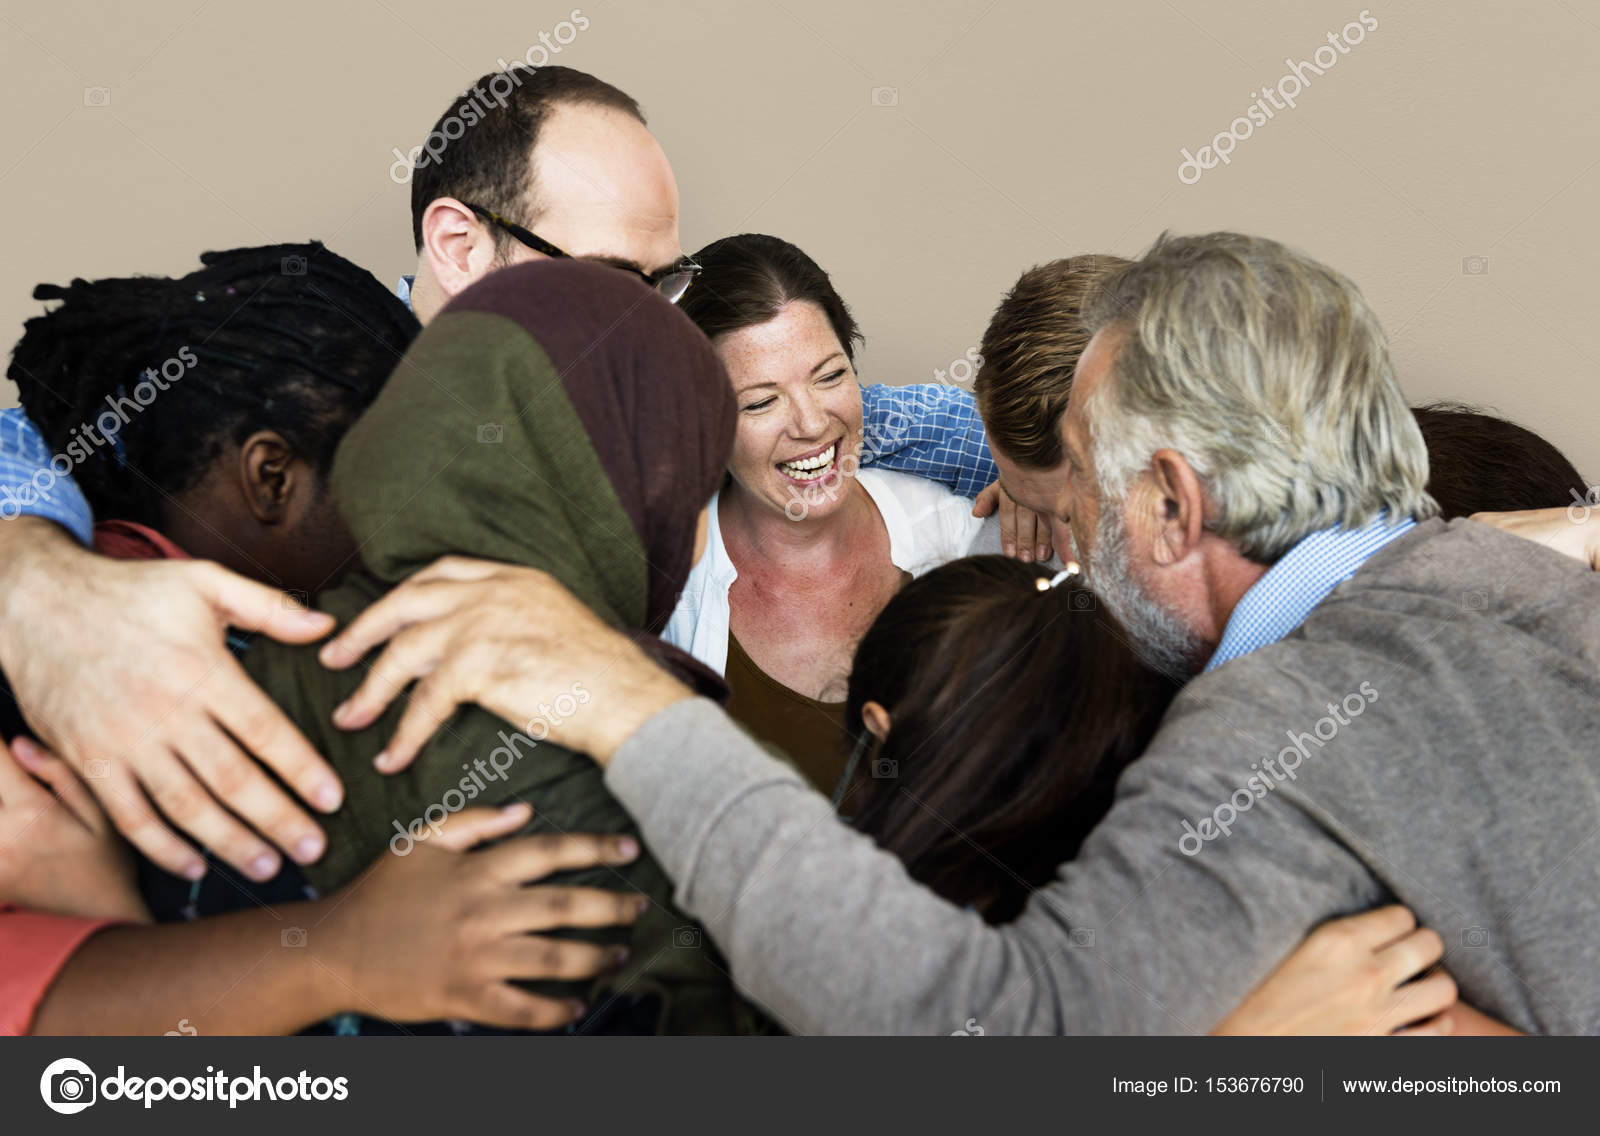 people hugging together stock photo rawpixel 153676790